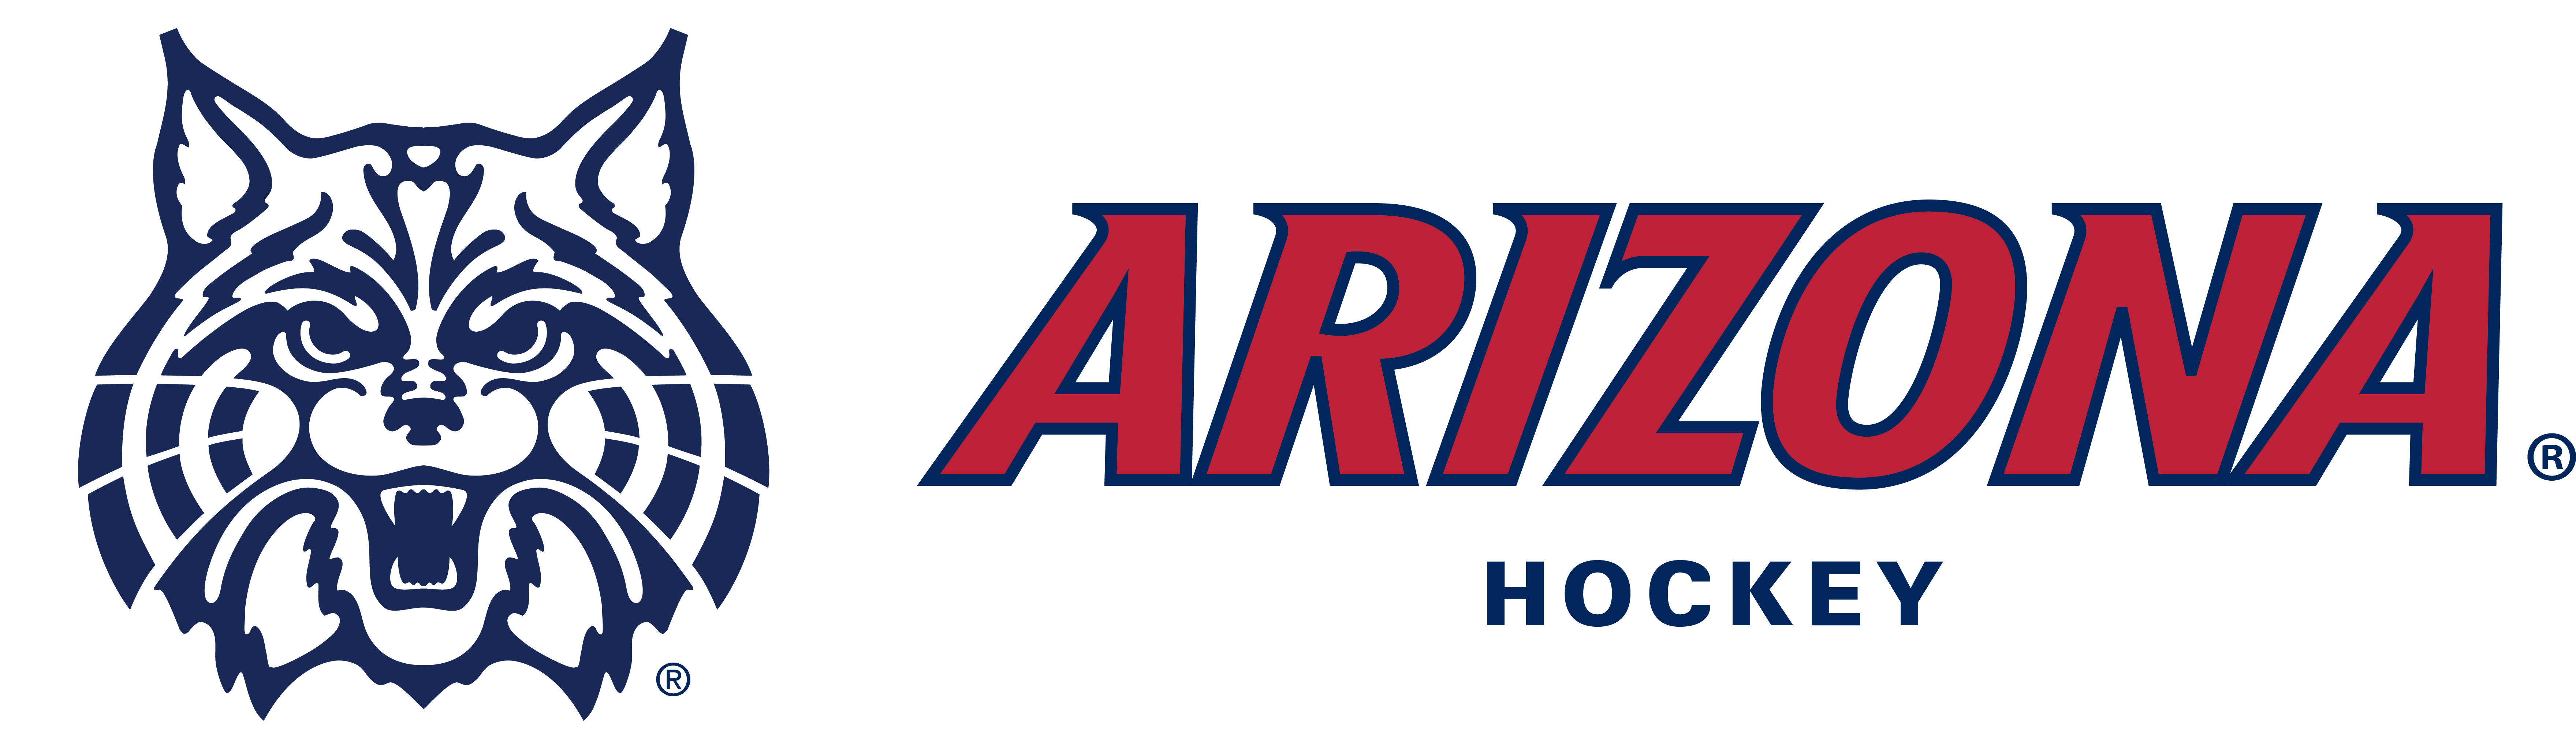 Wildcat clubfont hockey red blue